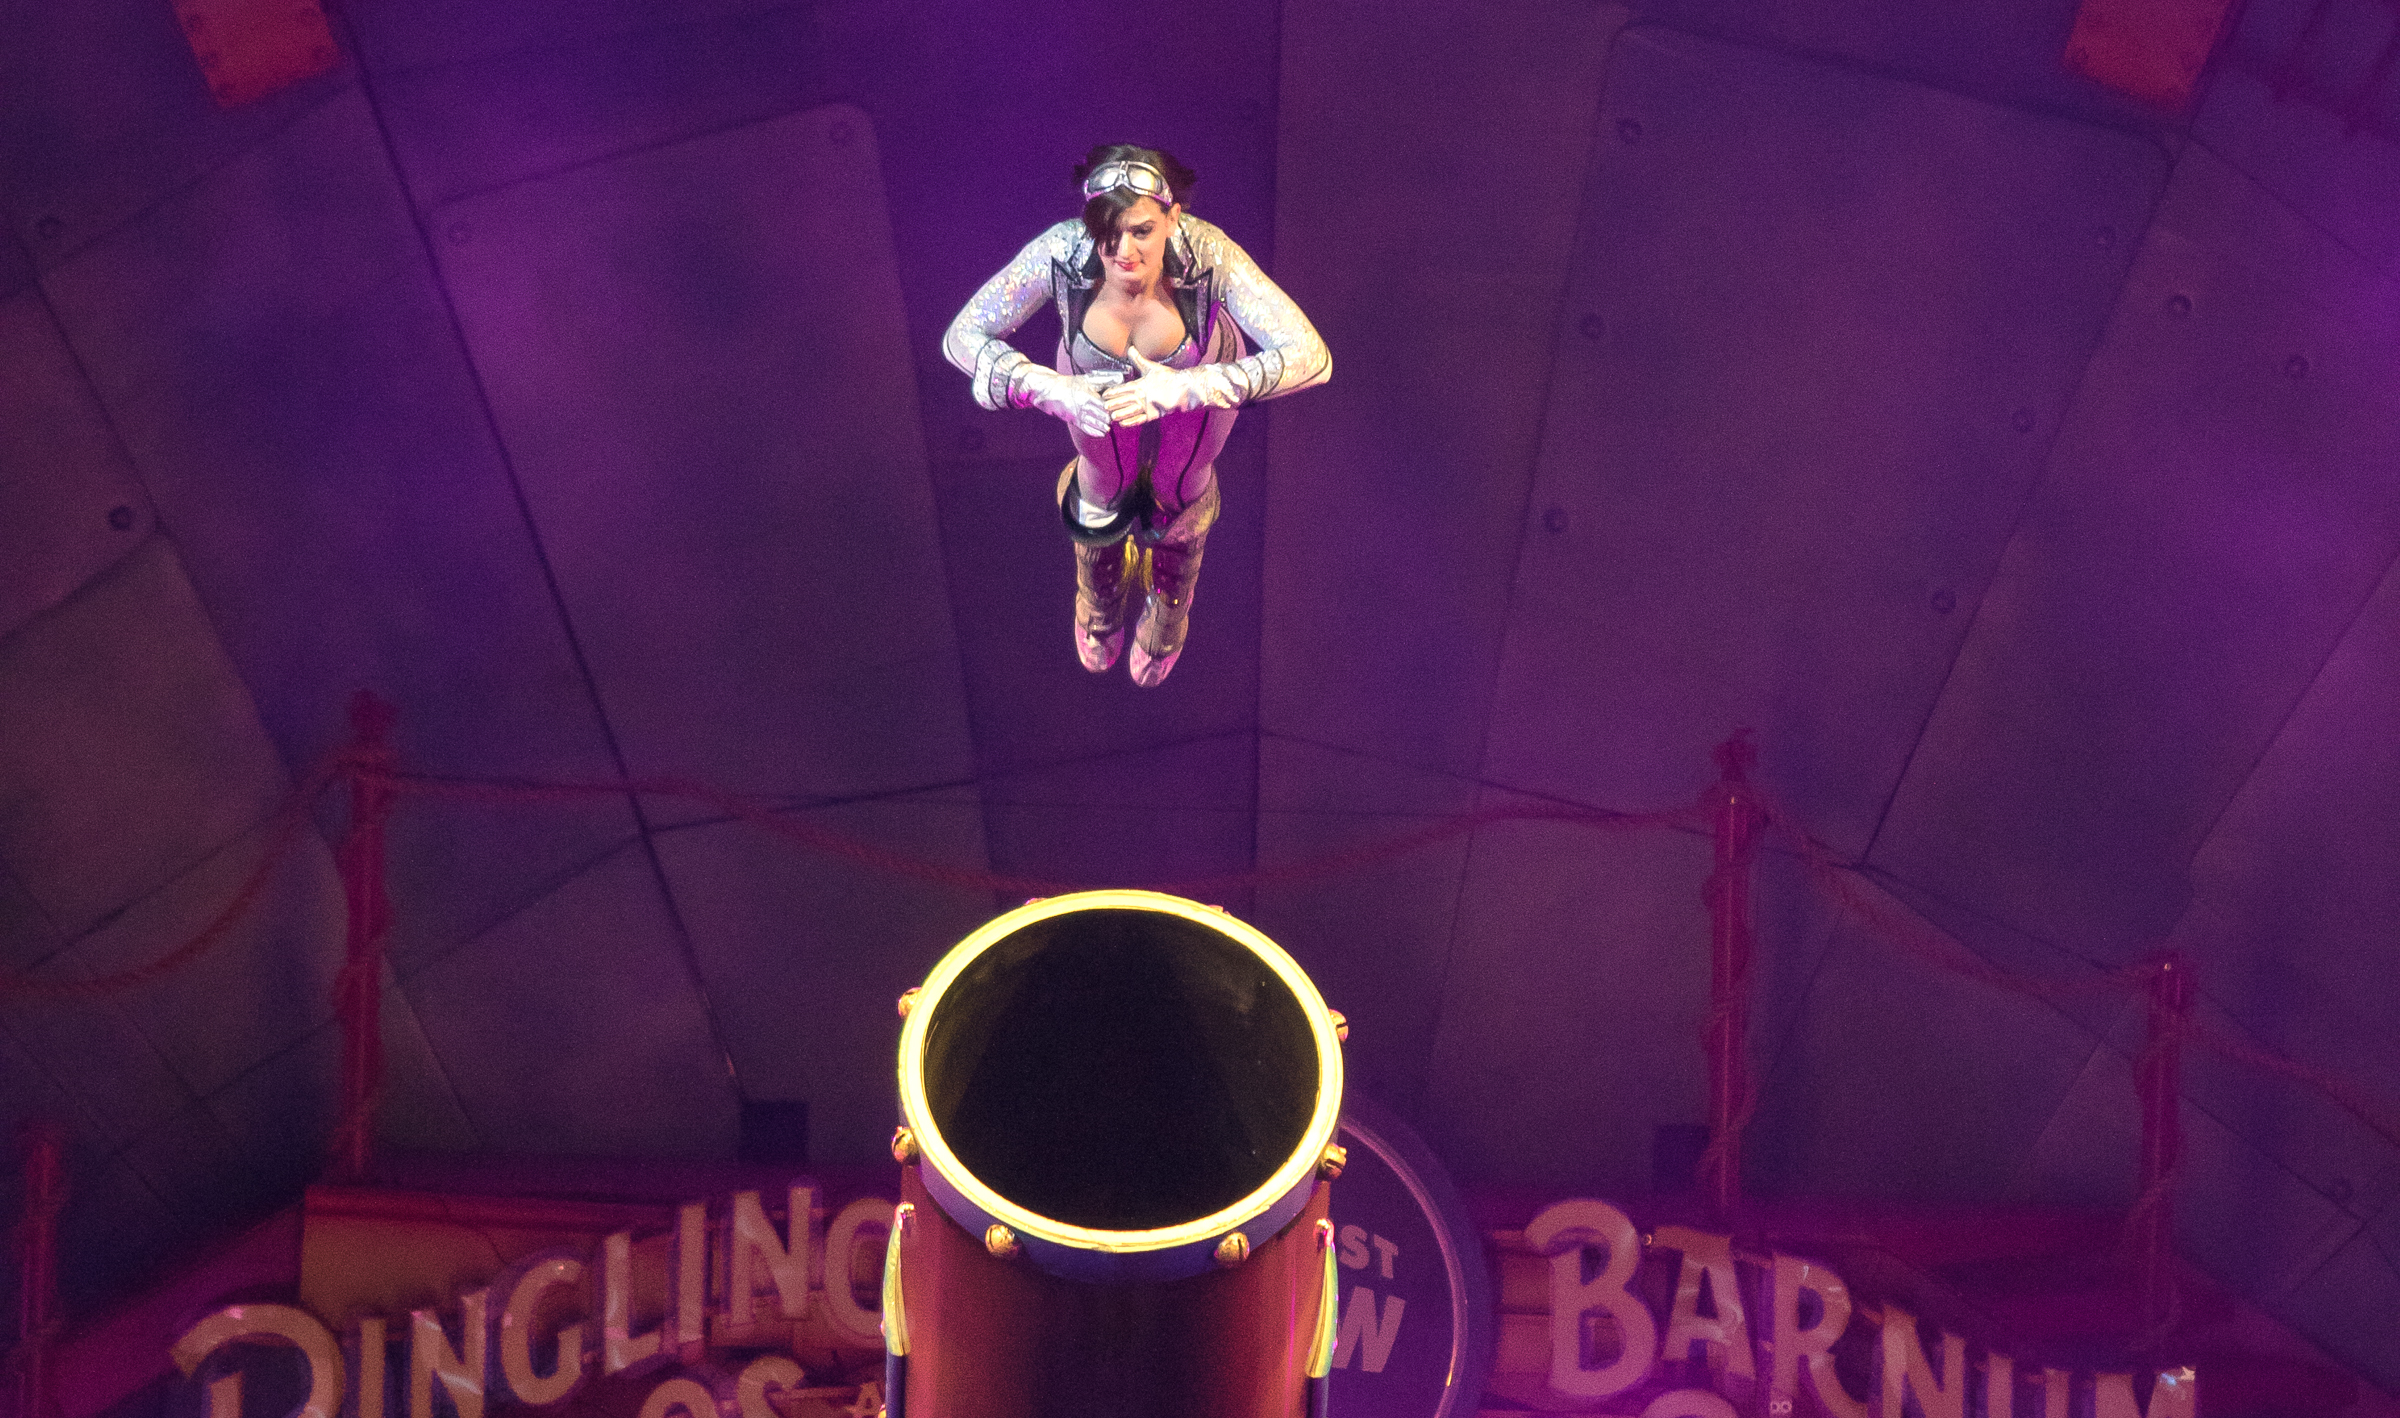 A Glimpse Inside The Secretive World Of Human Cannonballs